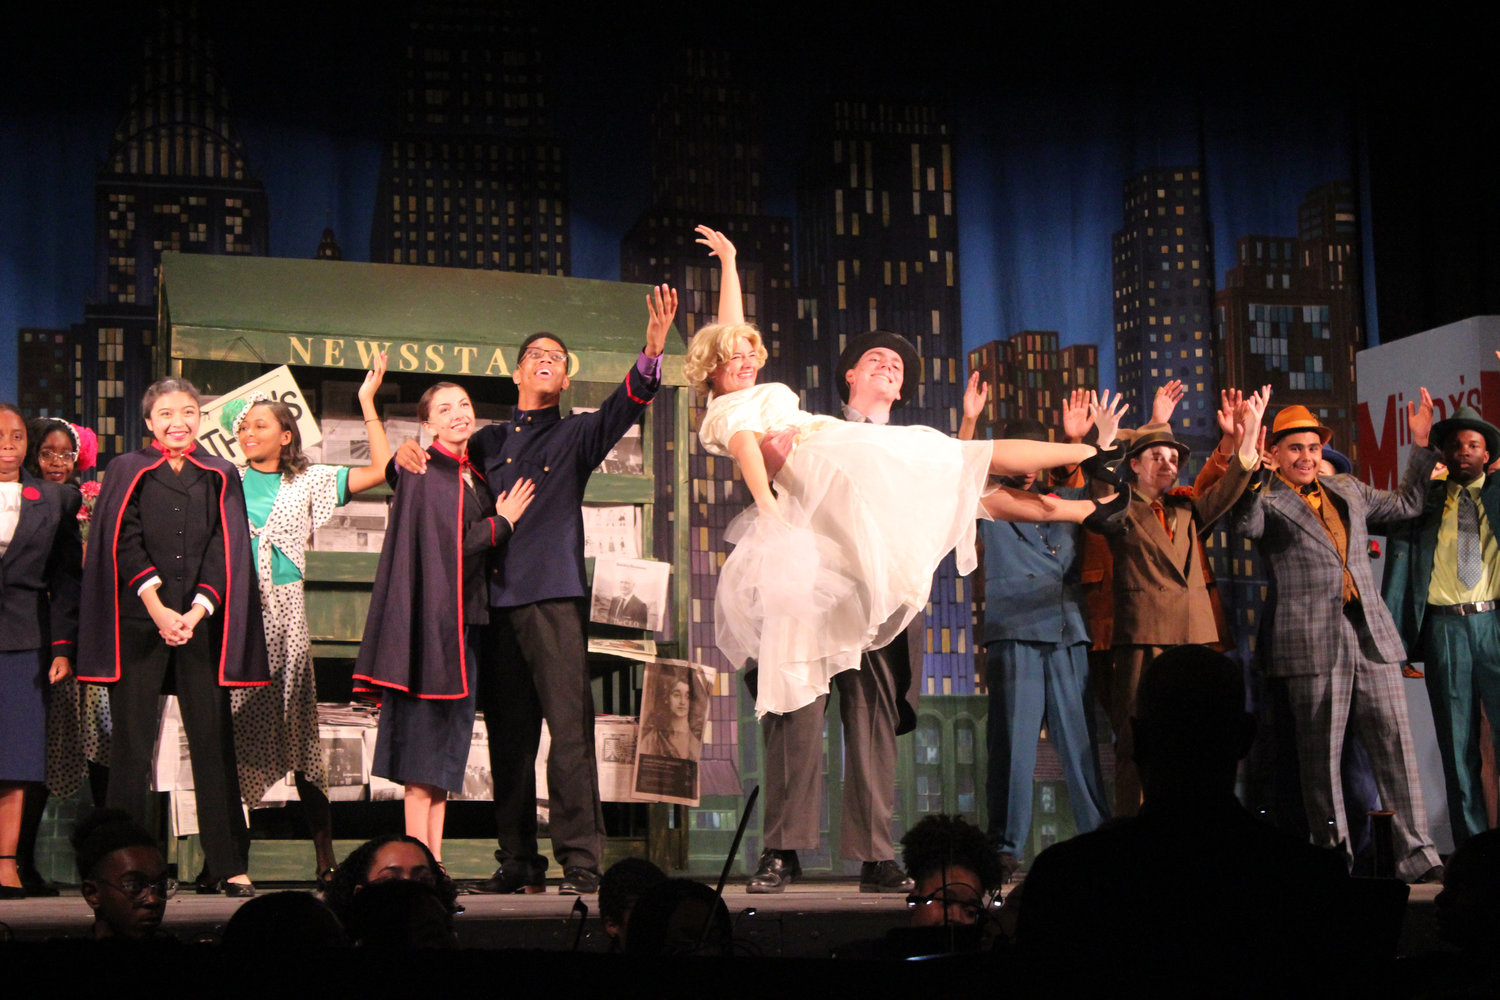 "The crowd cheered during the grand finale of the high school's musical production ""Guys and Dolls."" Starring in the show were Juliet Hugues, left, and Wilbert Diaz as Sarah Brown and Sky Masterson; Emily Orgill and Thomas Dean, right, as Adelaide and Nathan Detroit."